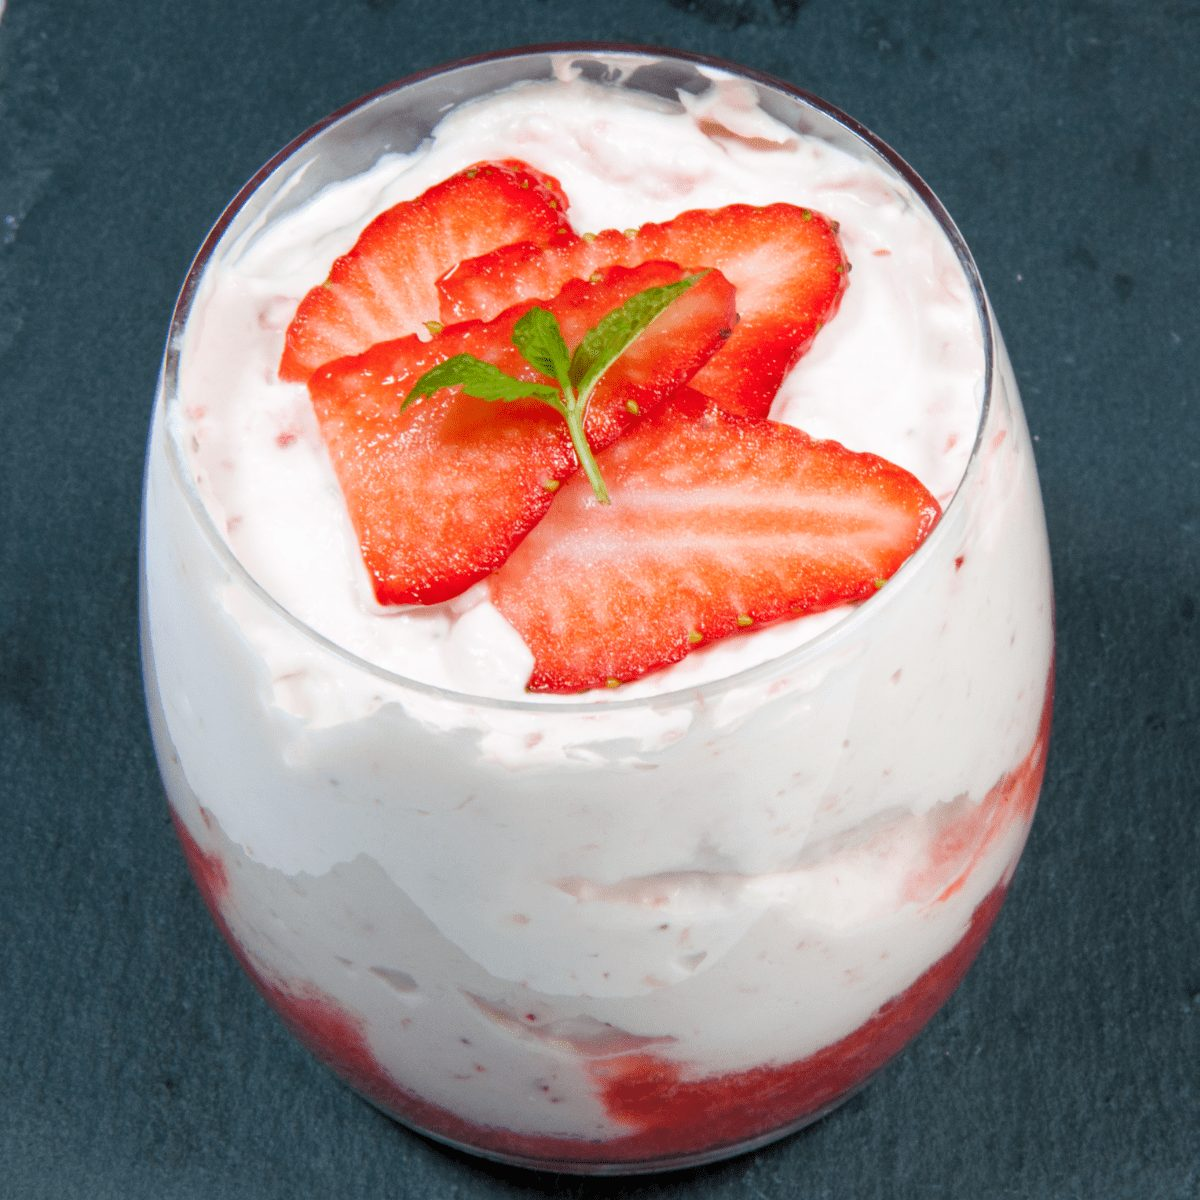 Fluffy and creamy strawberry mousse | https://theyumyumclub.com/2019/05/10/fluffy-creamy-strawberry-mousse/